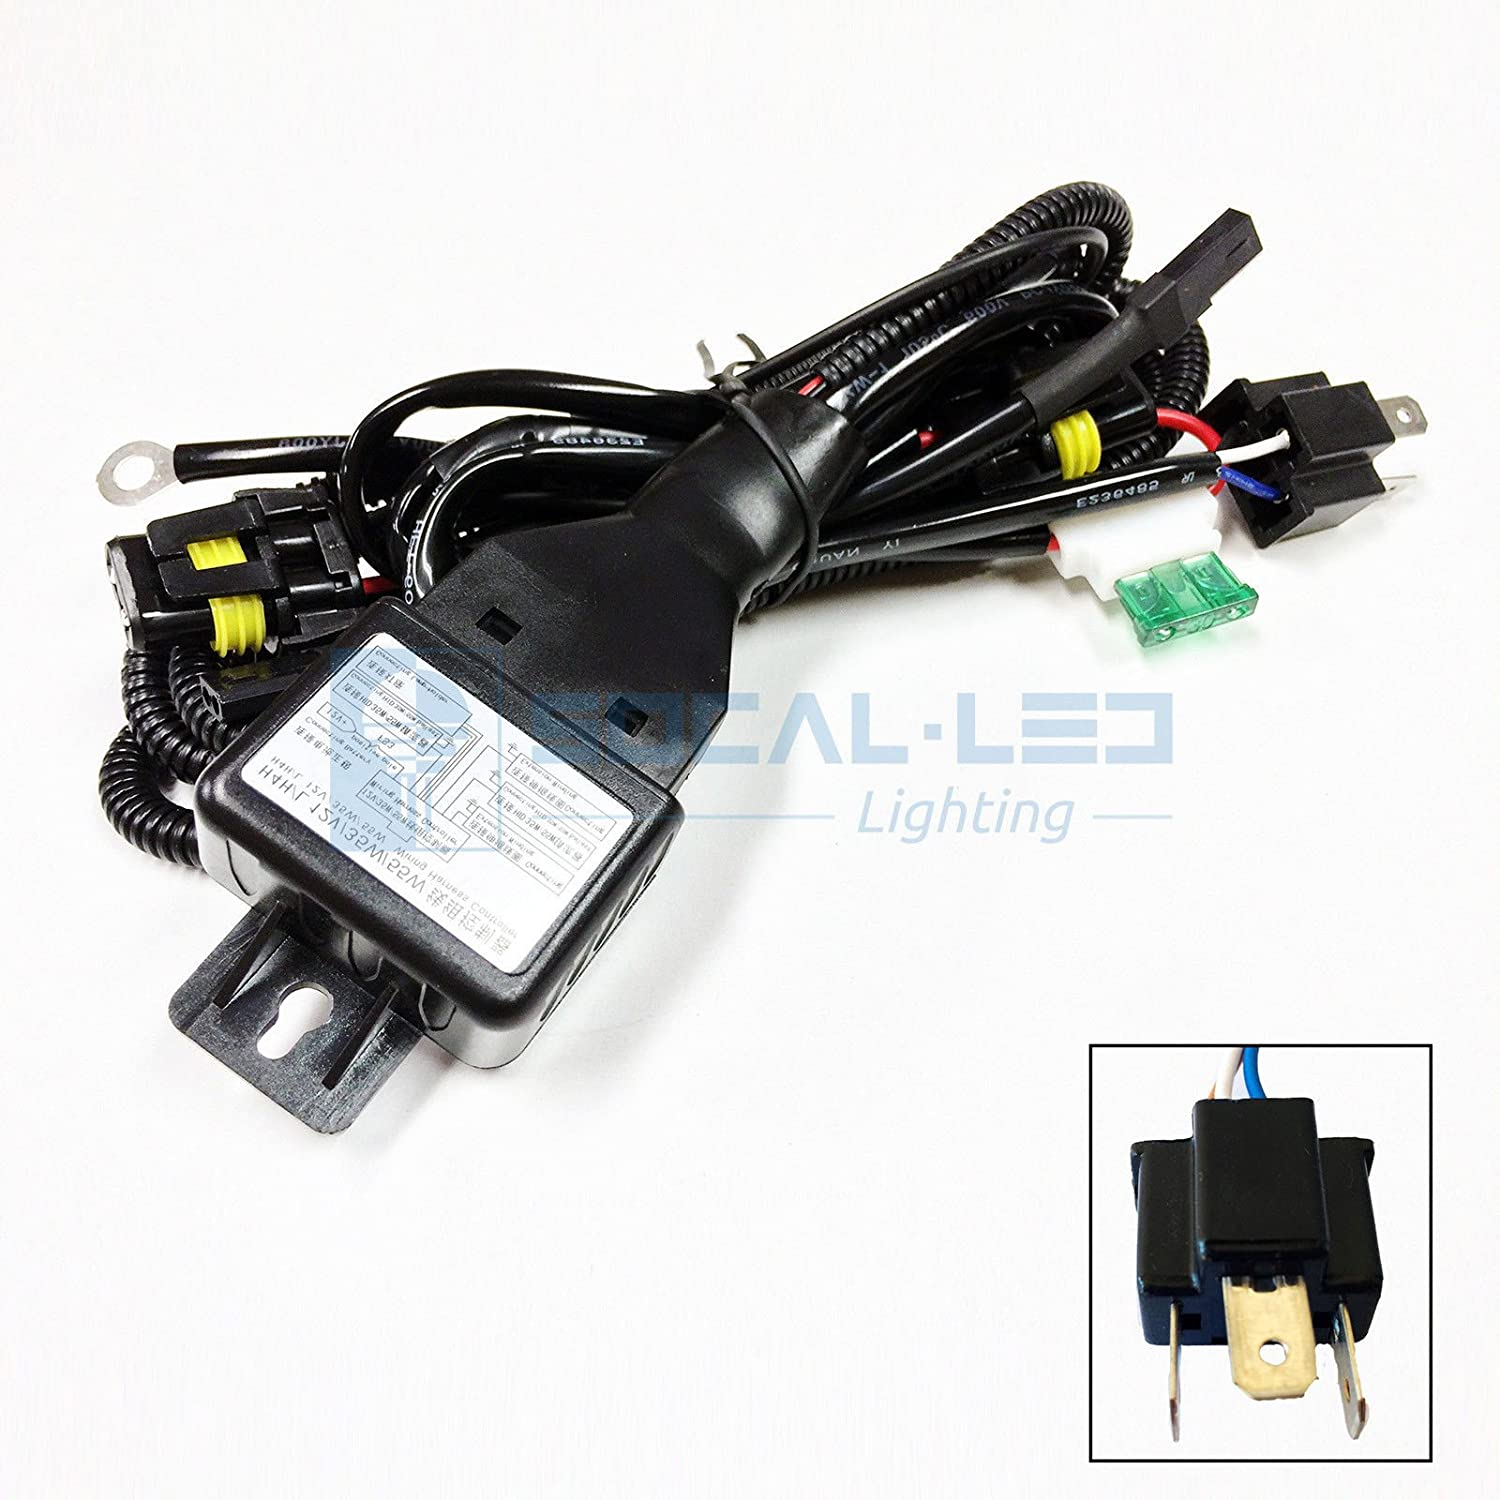 81lX2OBNA6L._SL1500_ amazon com o nex hid relay harness 9007 (hb5 9004) 12v 35w 55w bi 12v/55w wiring harness controller at eliteediting.co